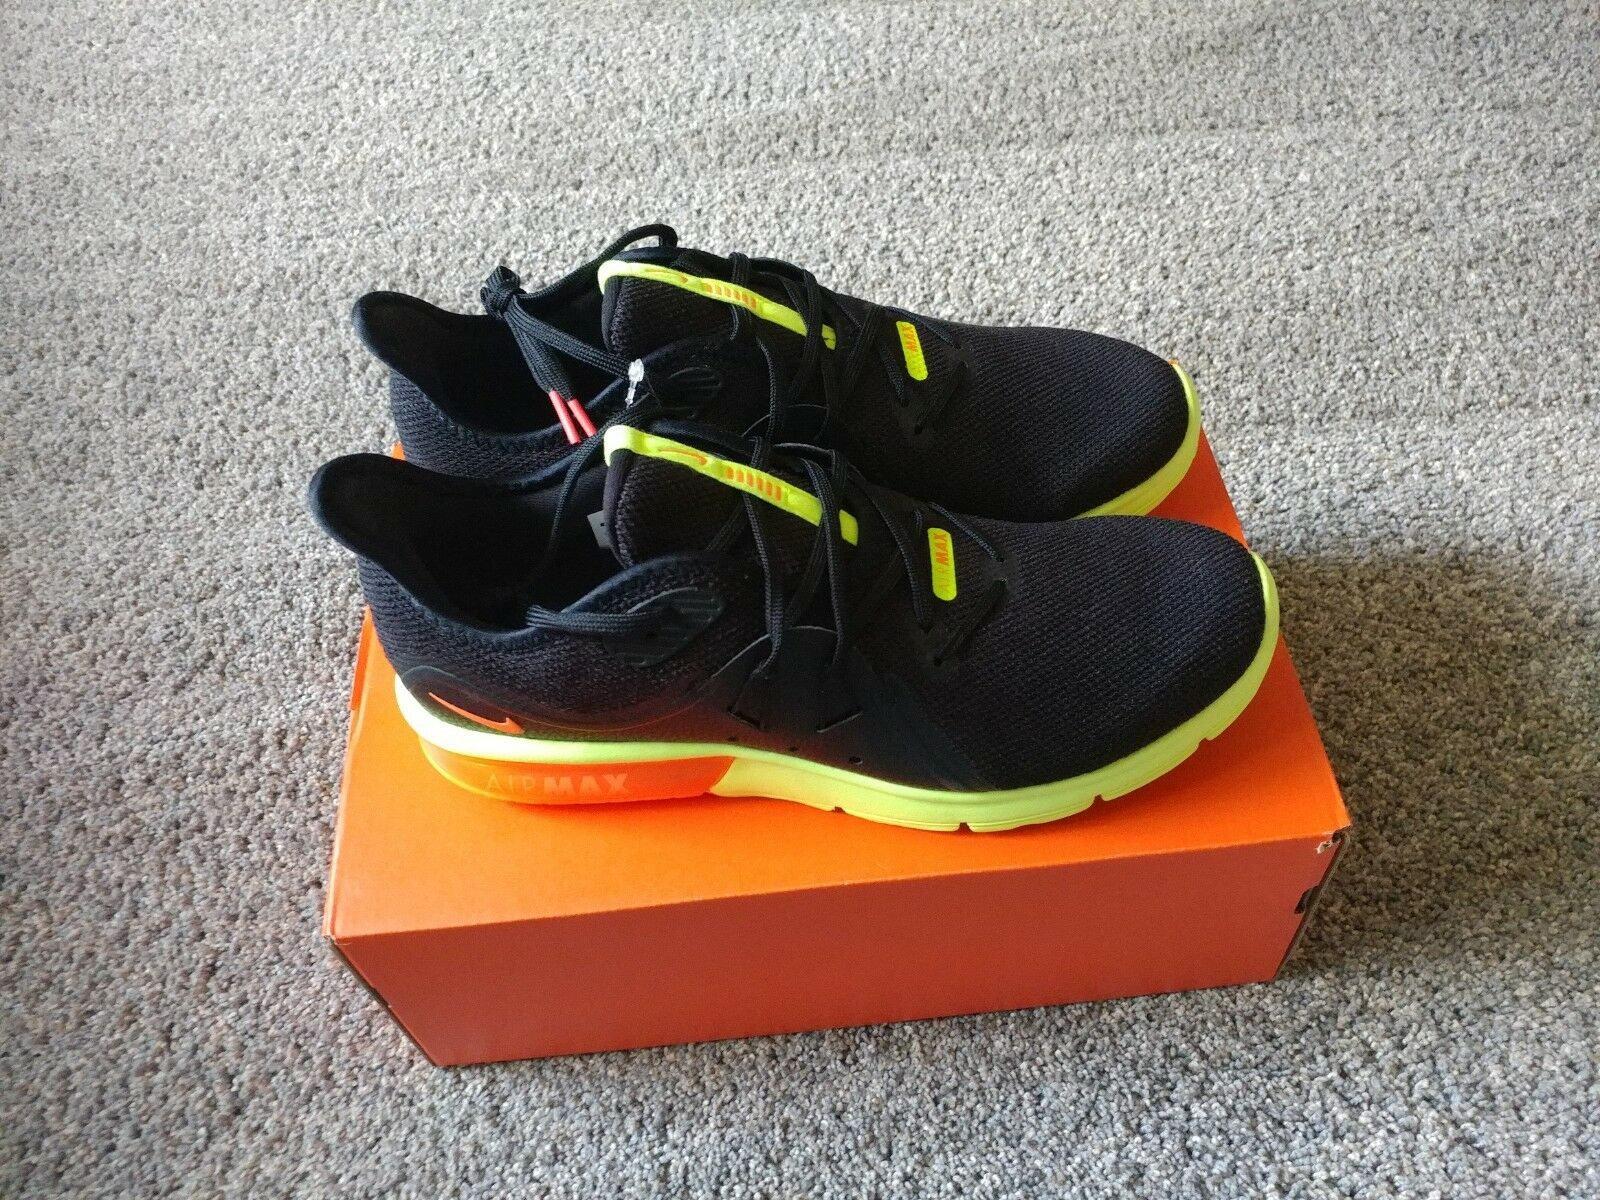 Uomo Nike Air Max Sequent 3 Nero Total Orange - Volt 921694 012 NEW Size 10